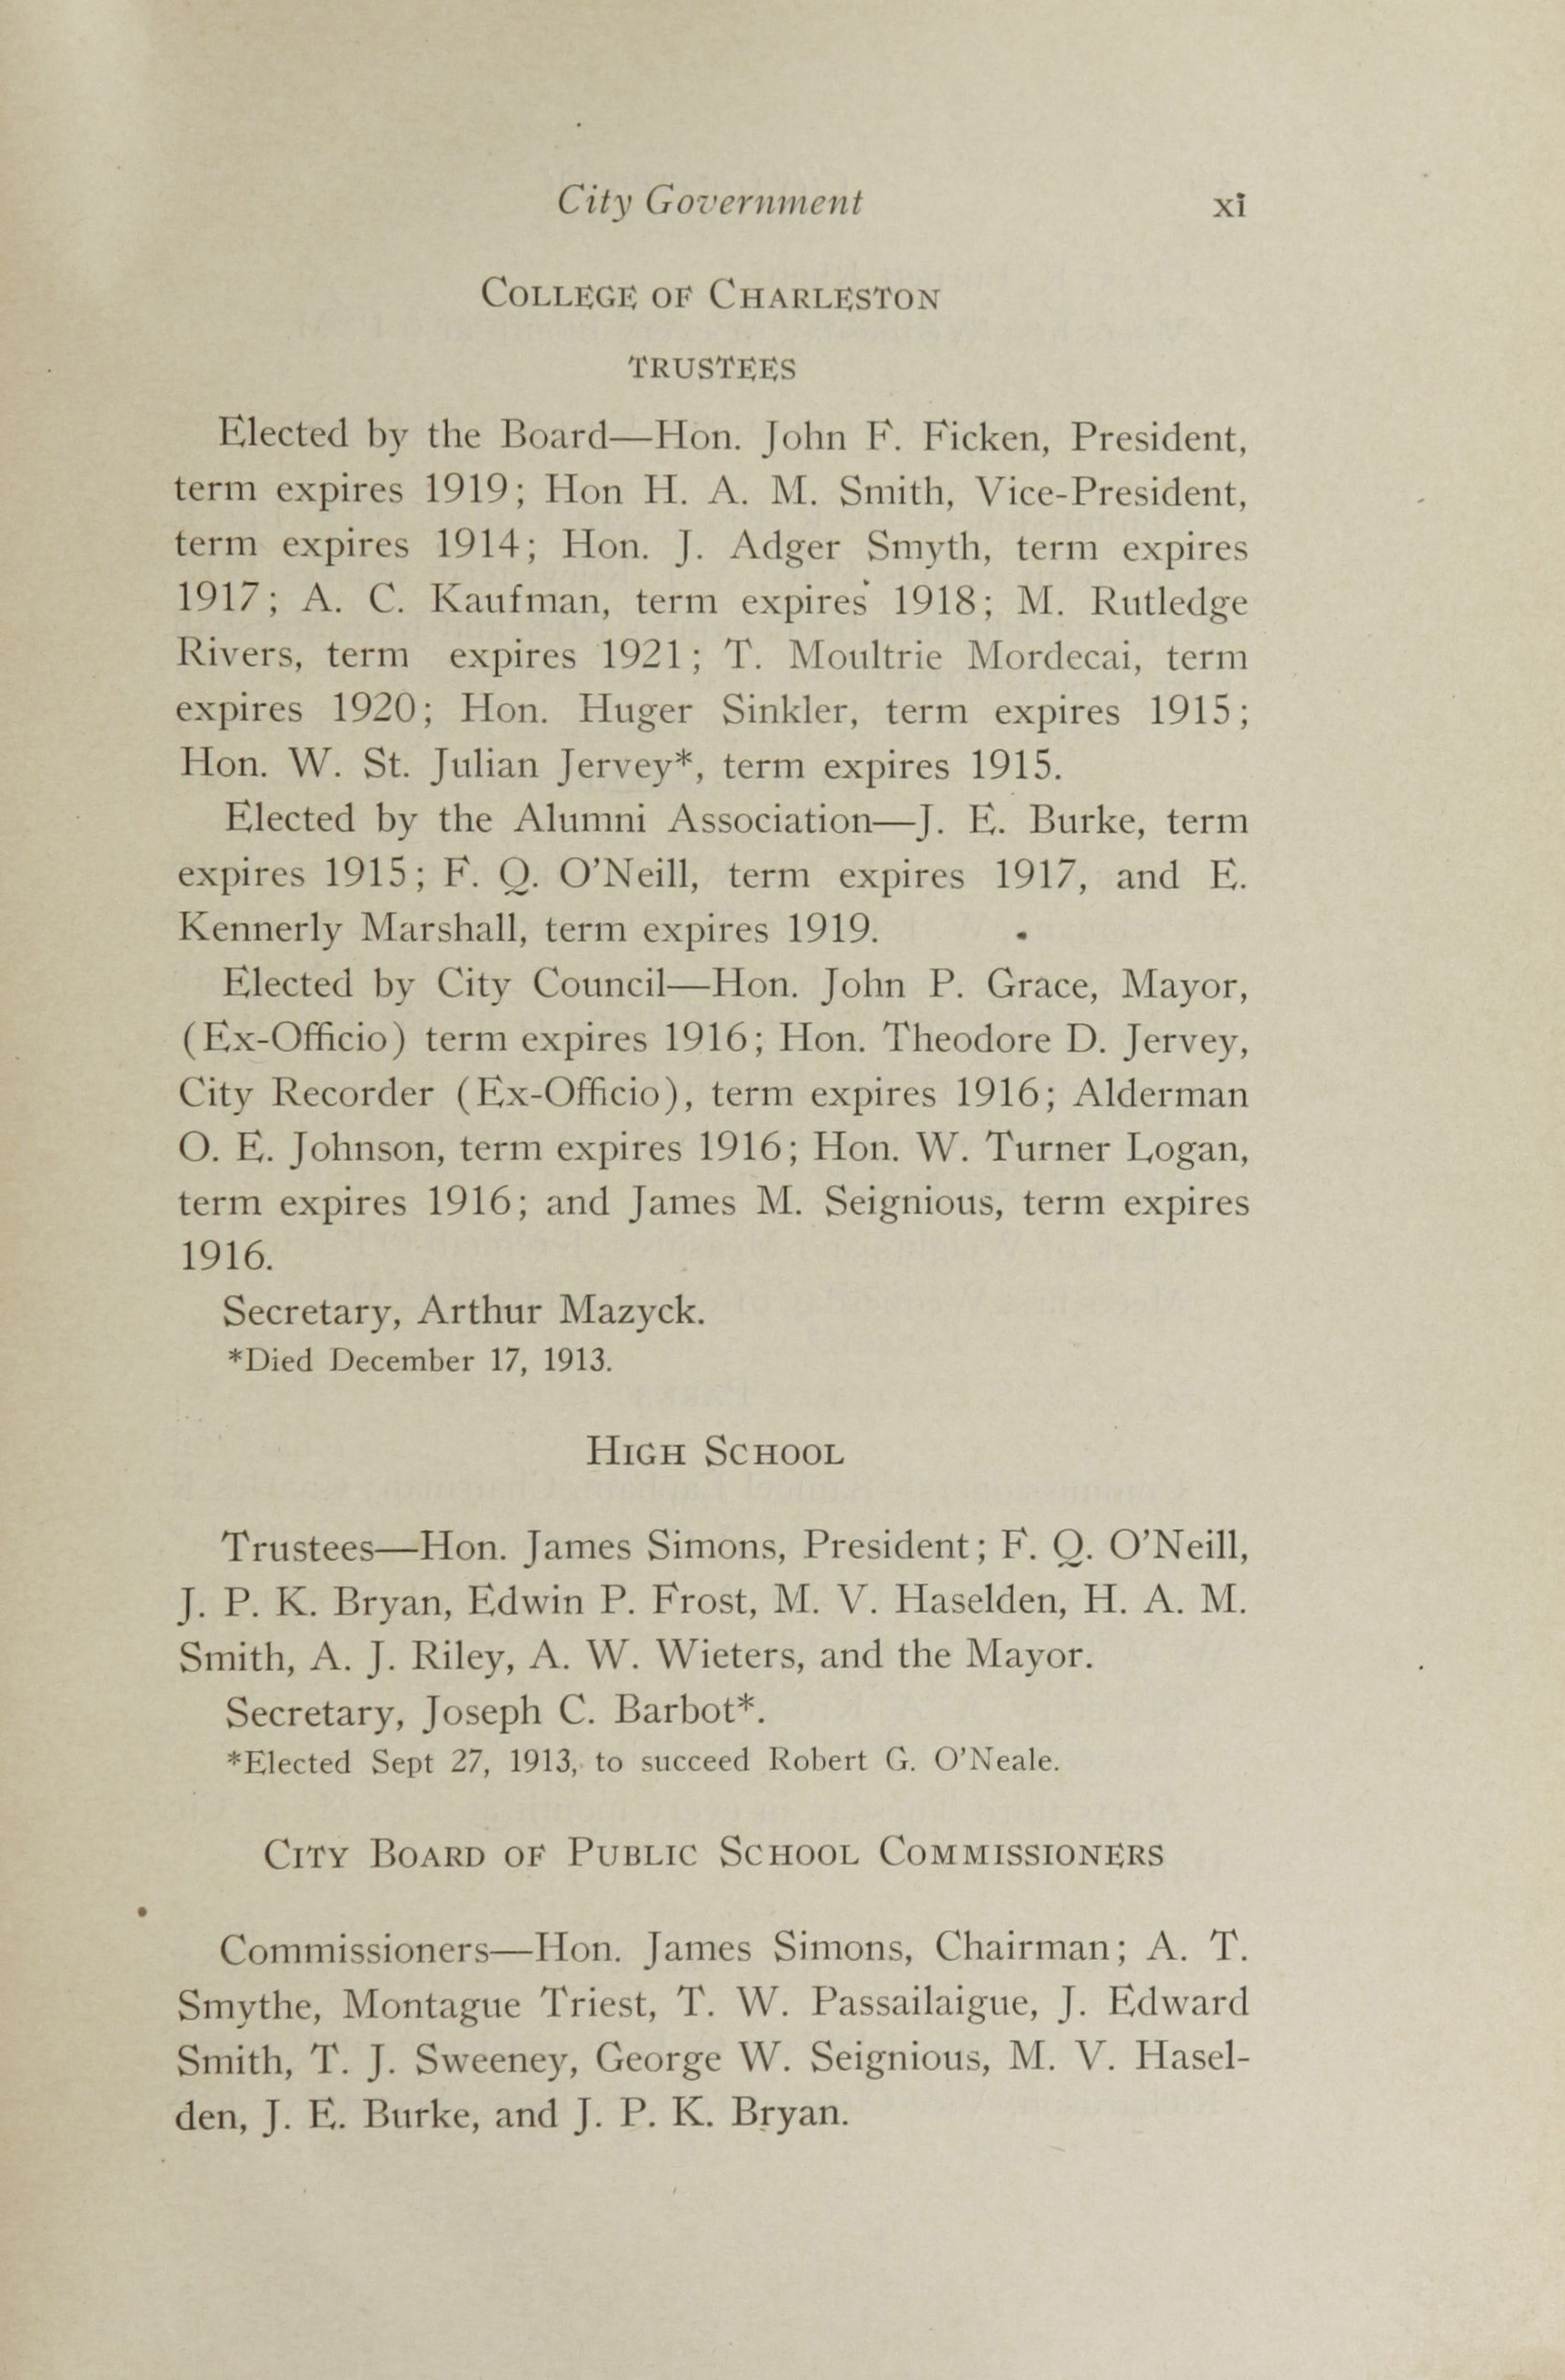 Charleston Yearbook, 1913, page xi